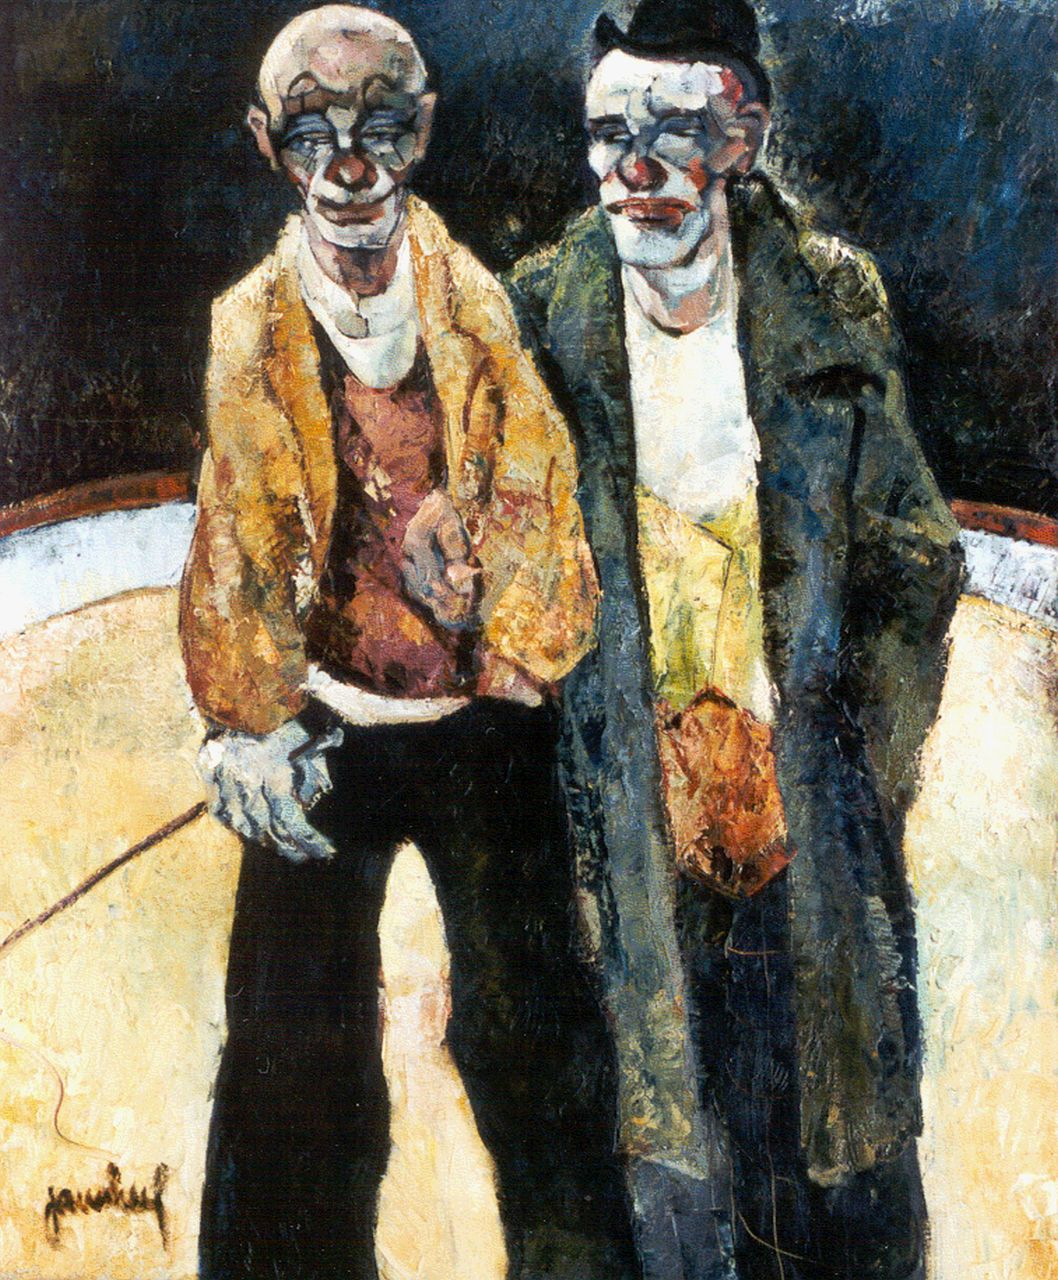 Heel J.J. van | Johannes Jacobus 'Jan' van Heel, Two Clowns, oil on canvas 60.3 x 50.5 cm, signed l.l.